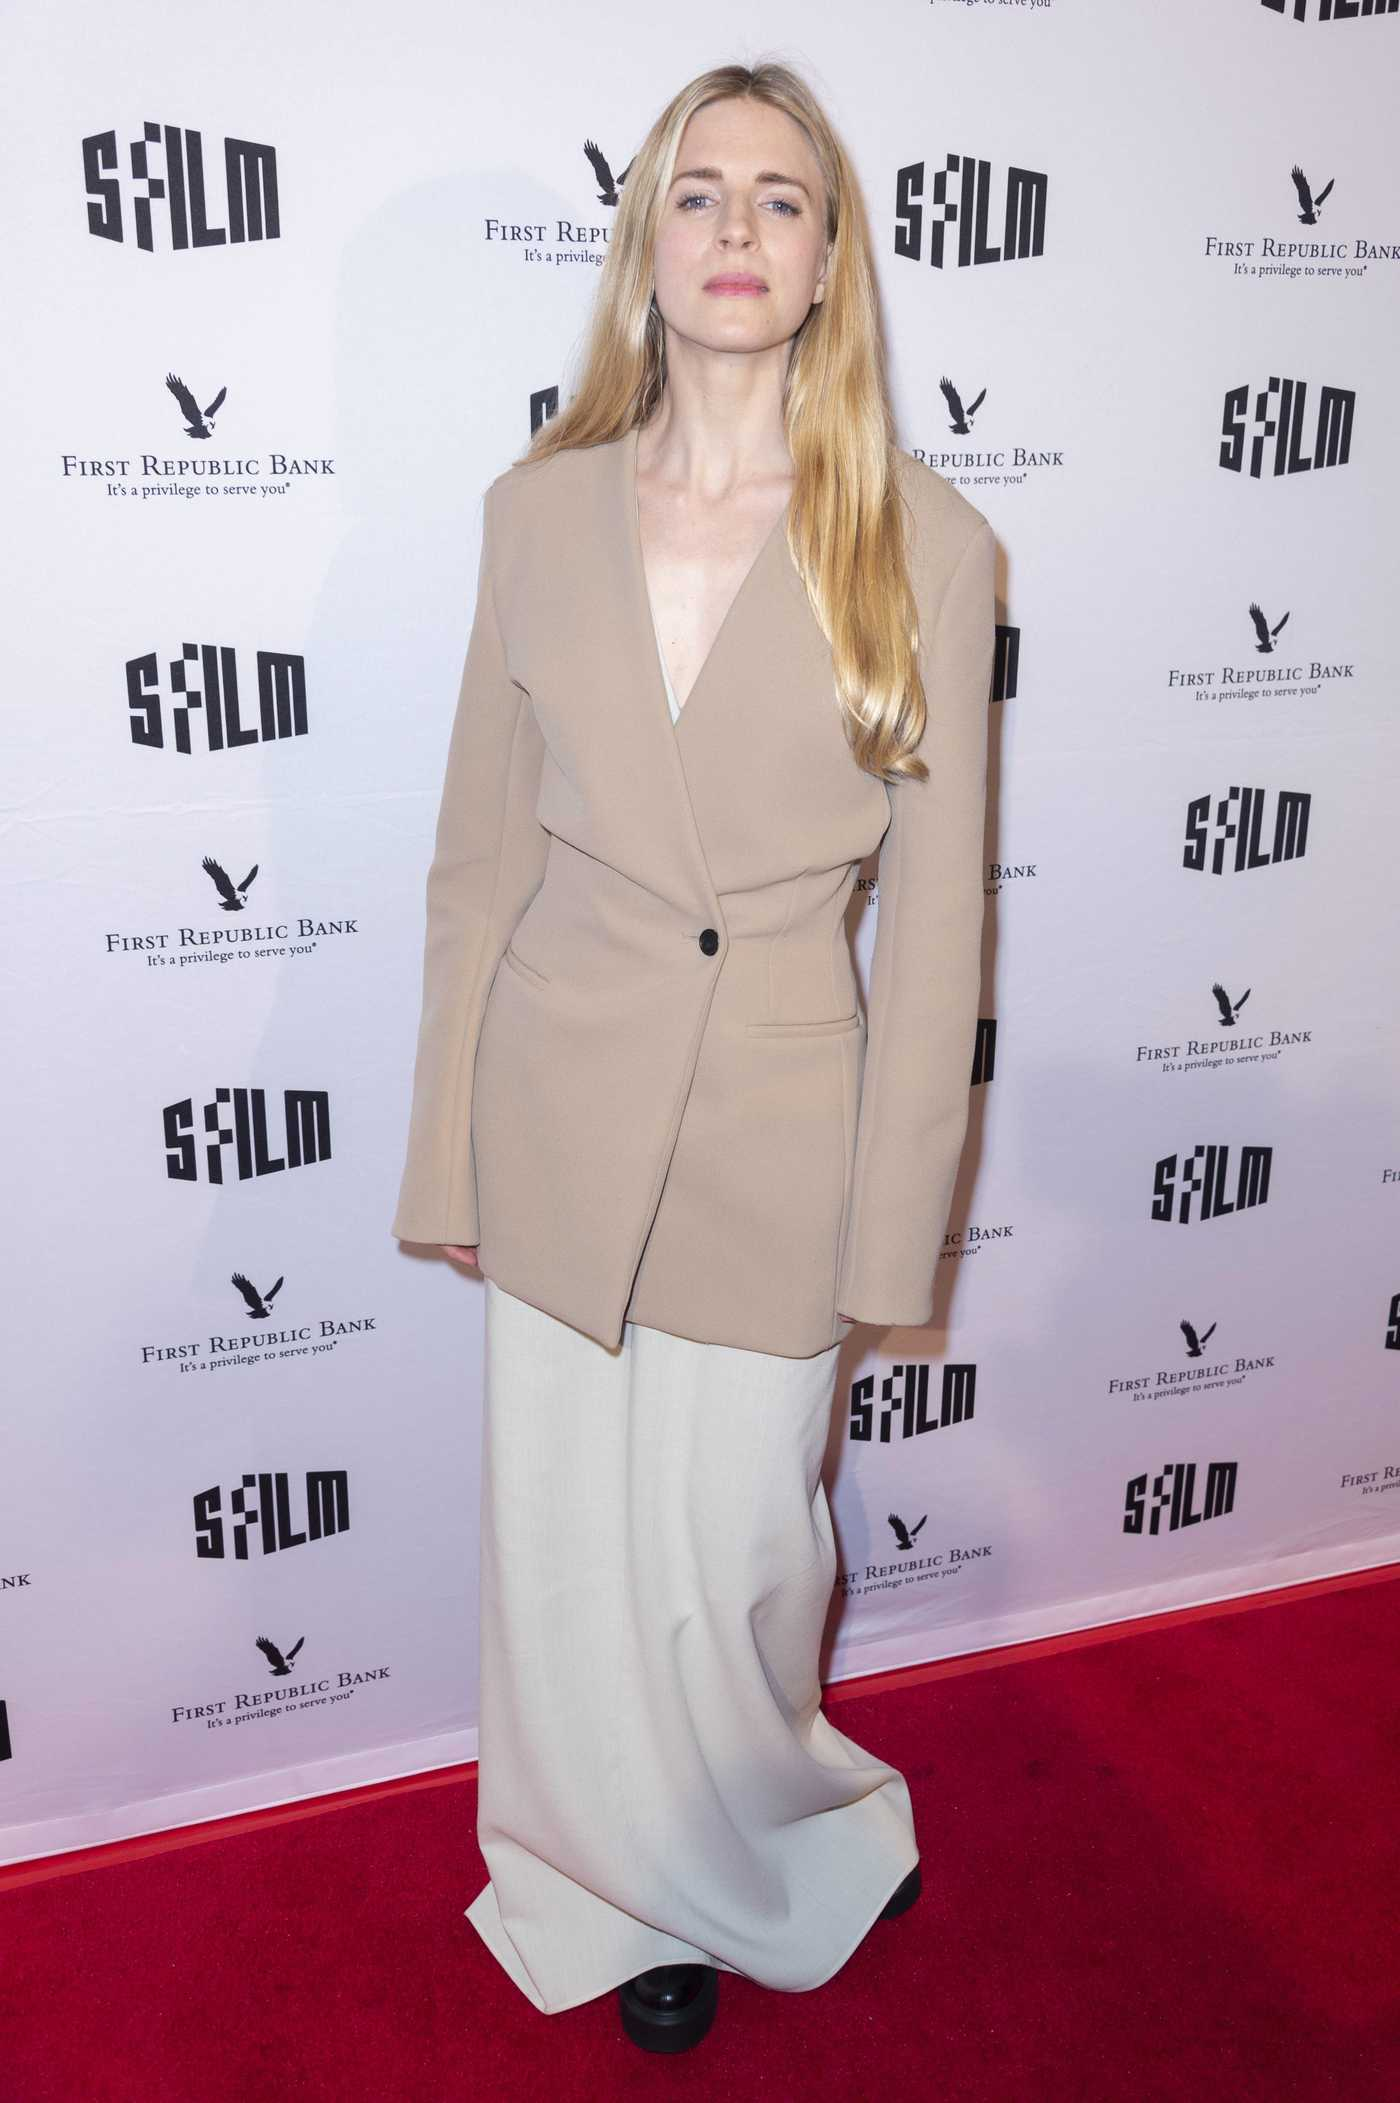 Brit Marling Attends The OA Part II Screening at The Castro Theatre in San Francisco 03/20/2019